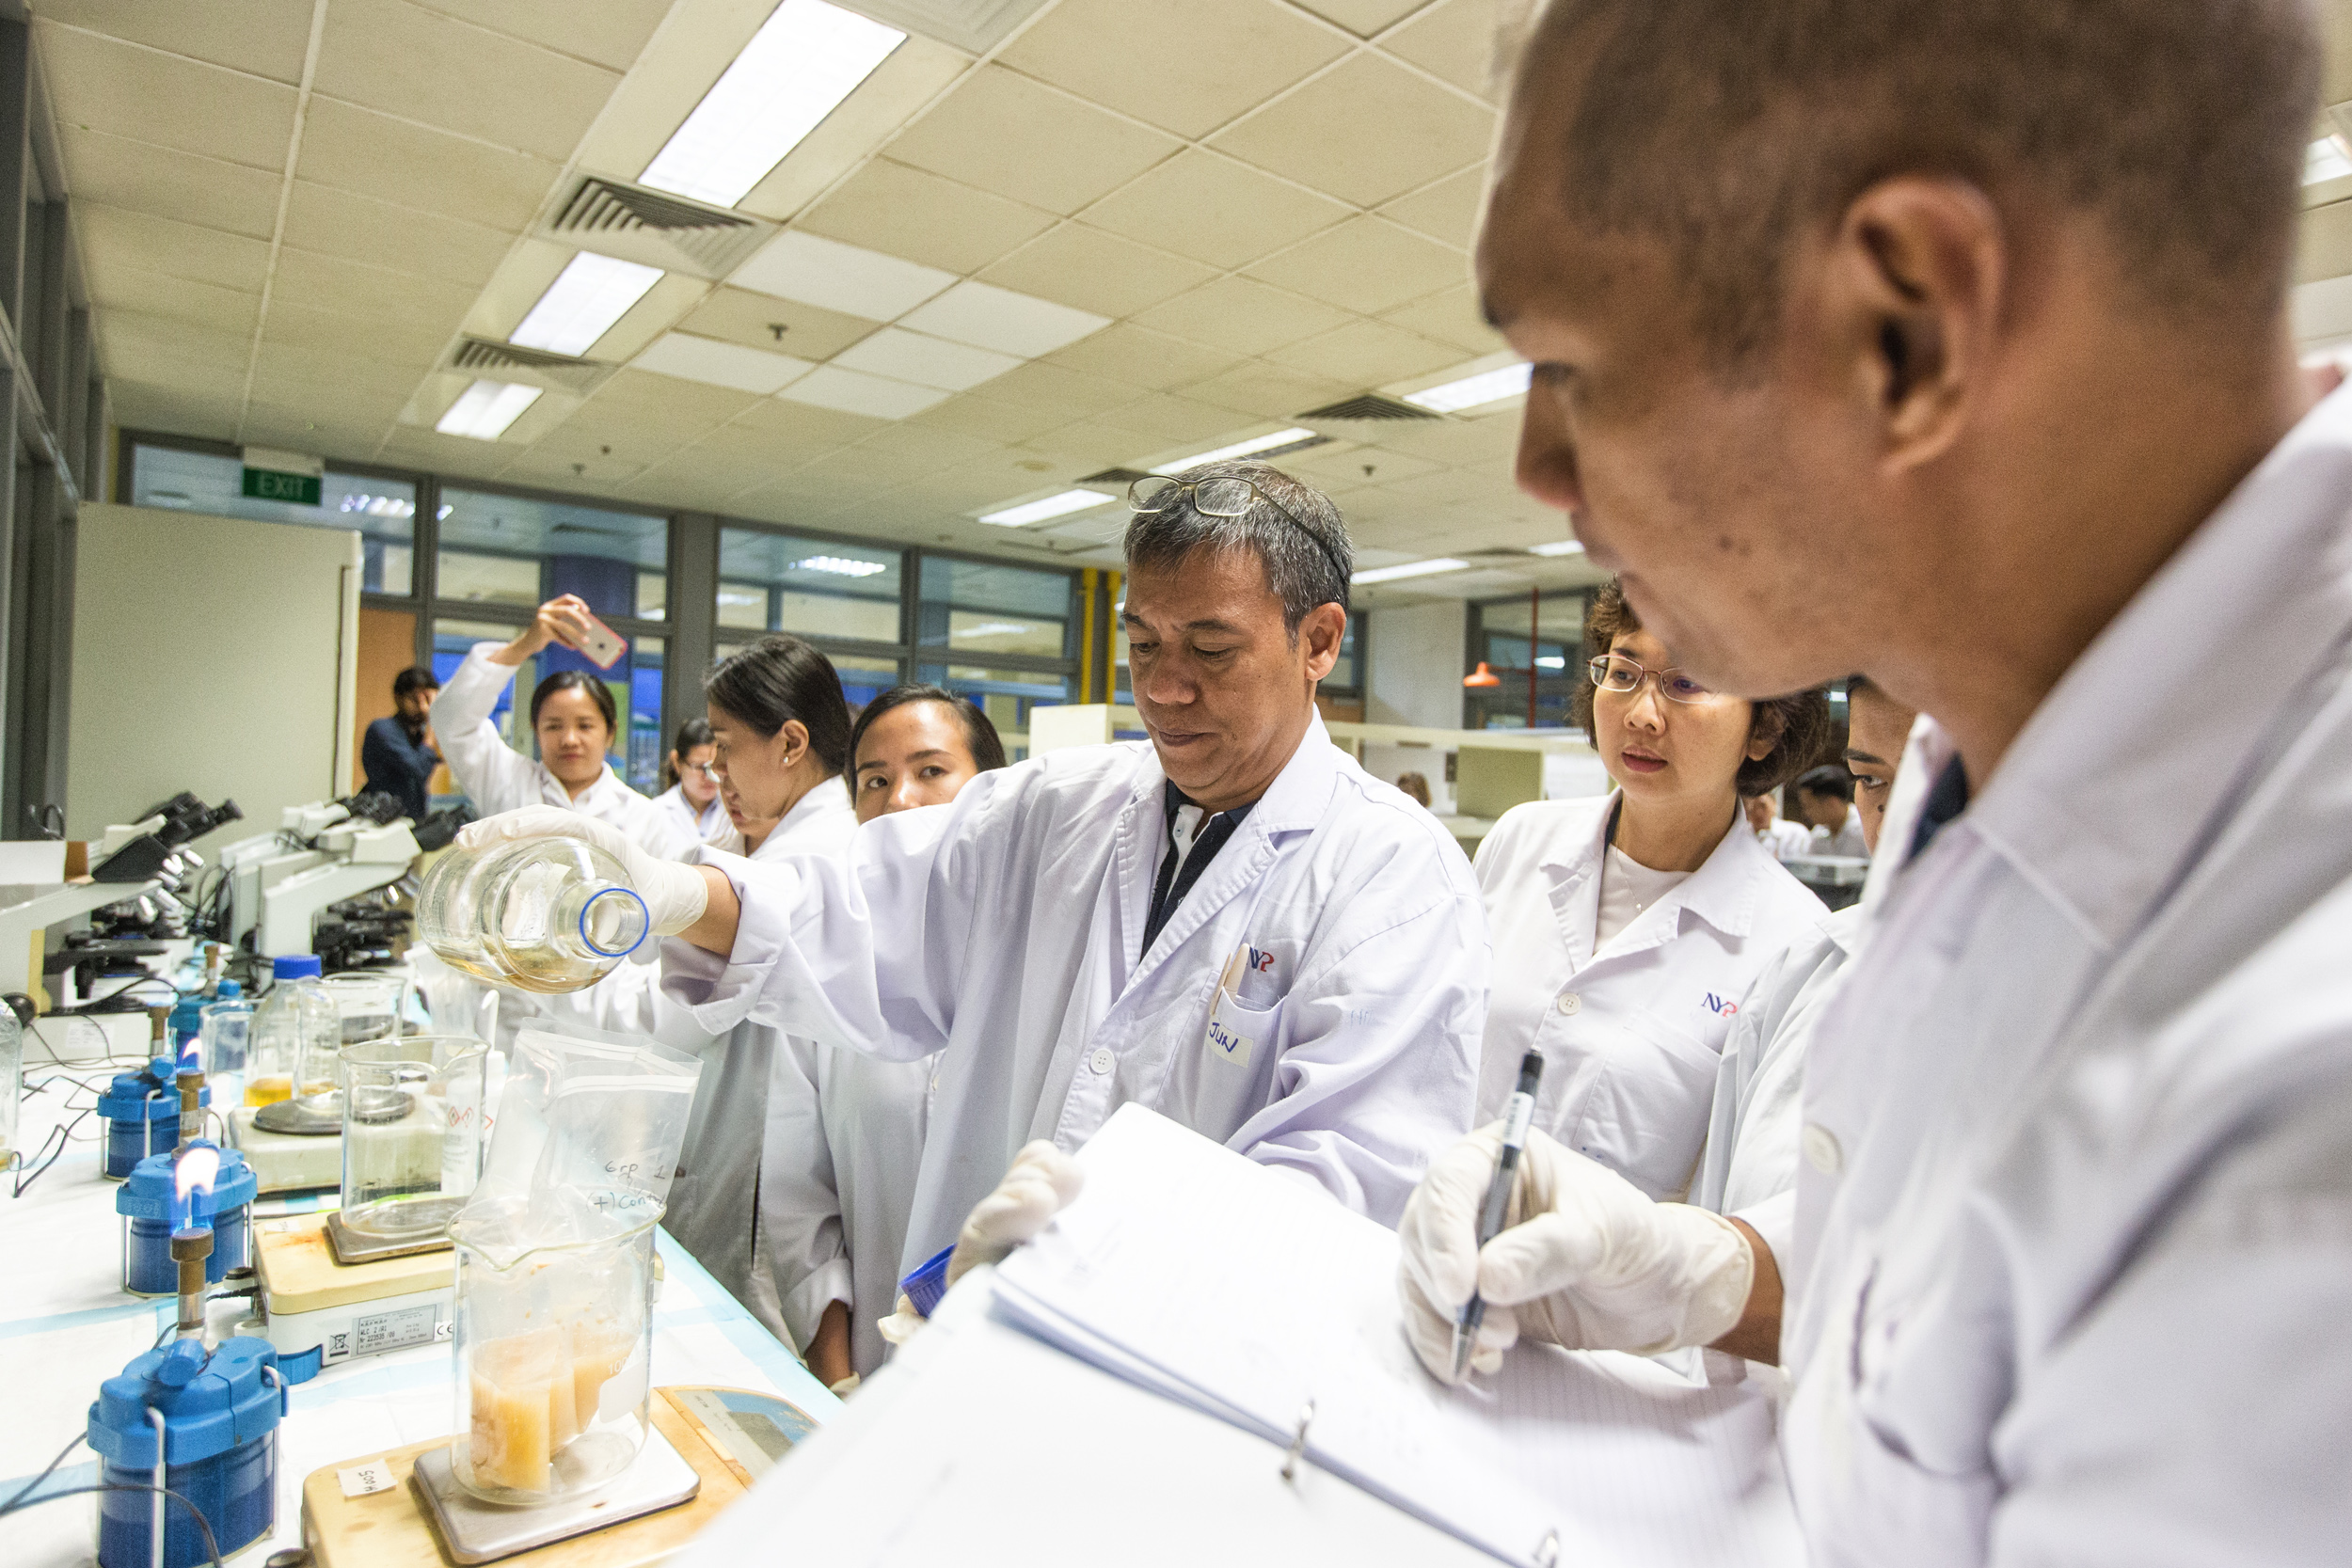 Jun Leo (centre) pours in the milk samples to its specific amount for microbiology testing. Other samples that are used for testing include salads and raw seafood-based foods.